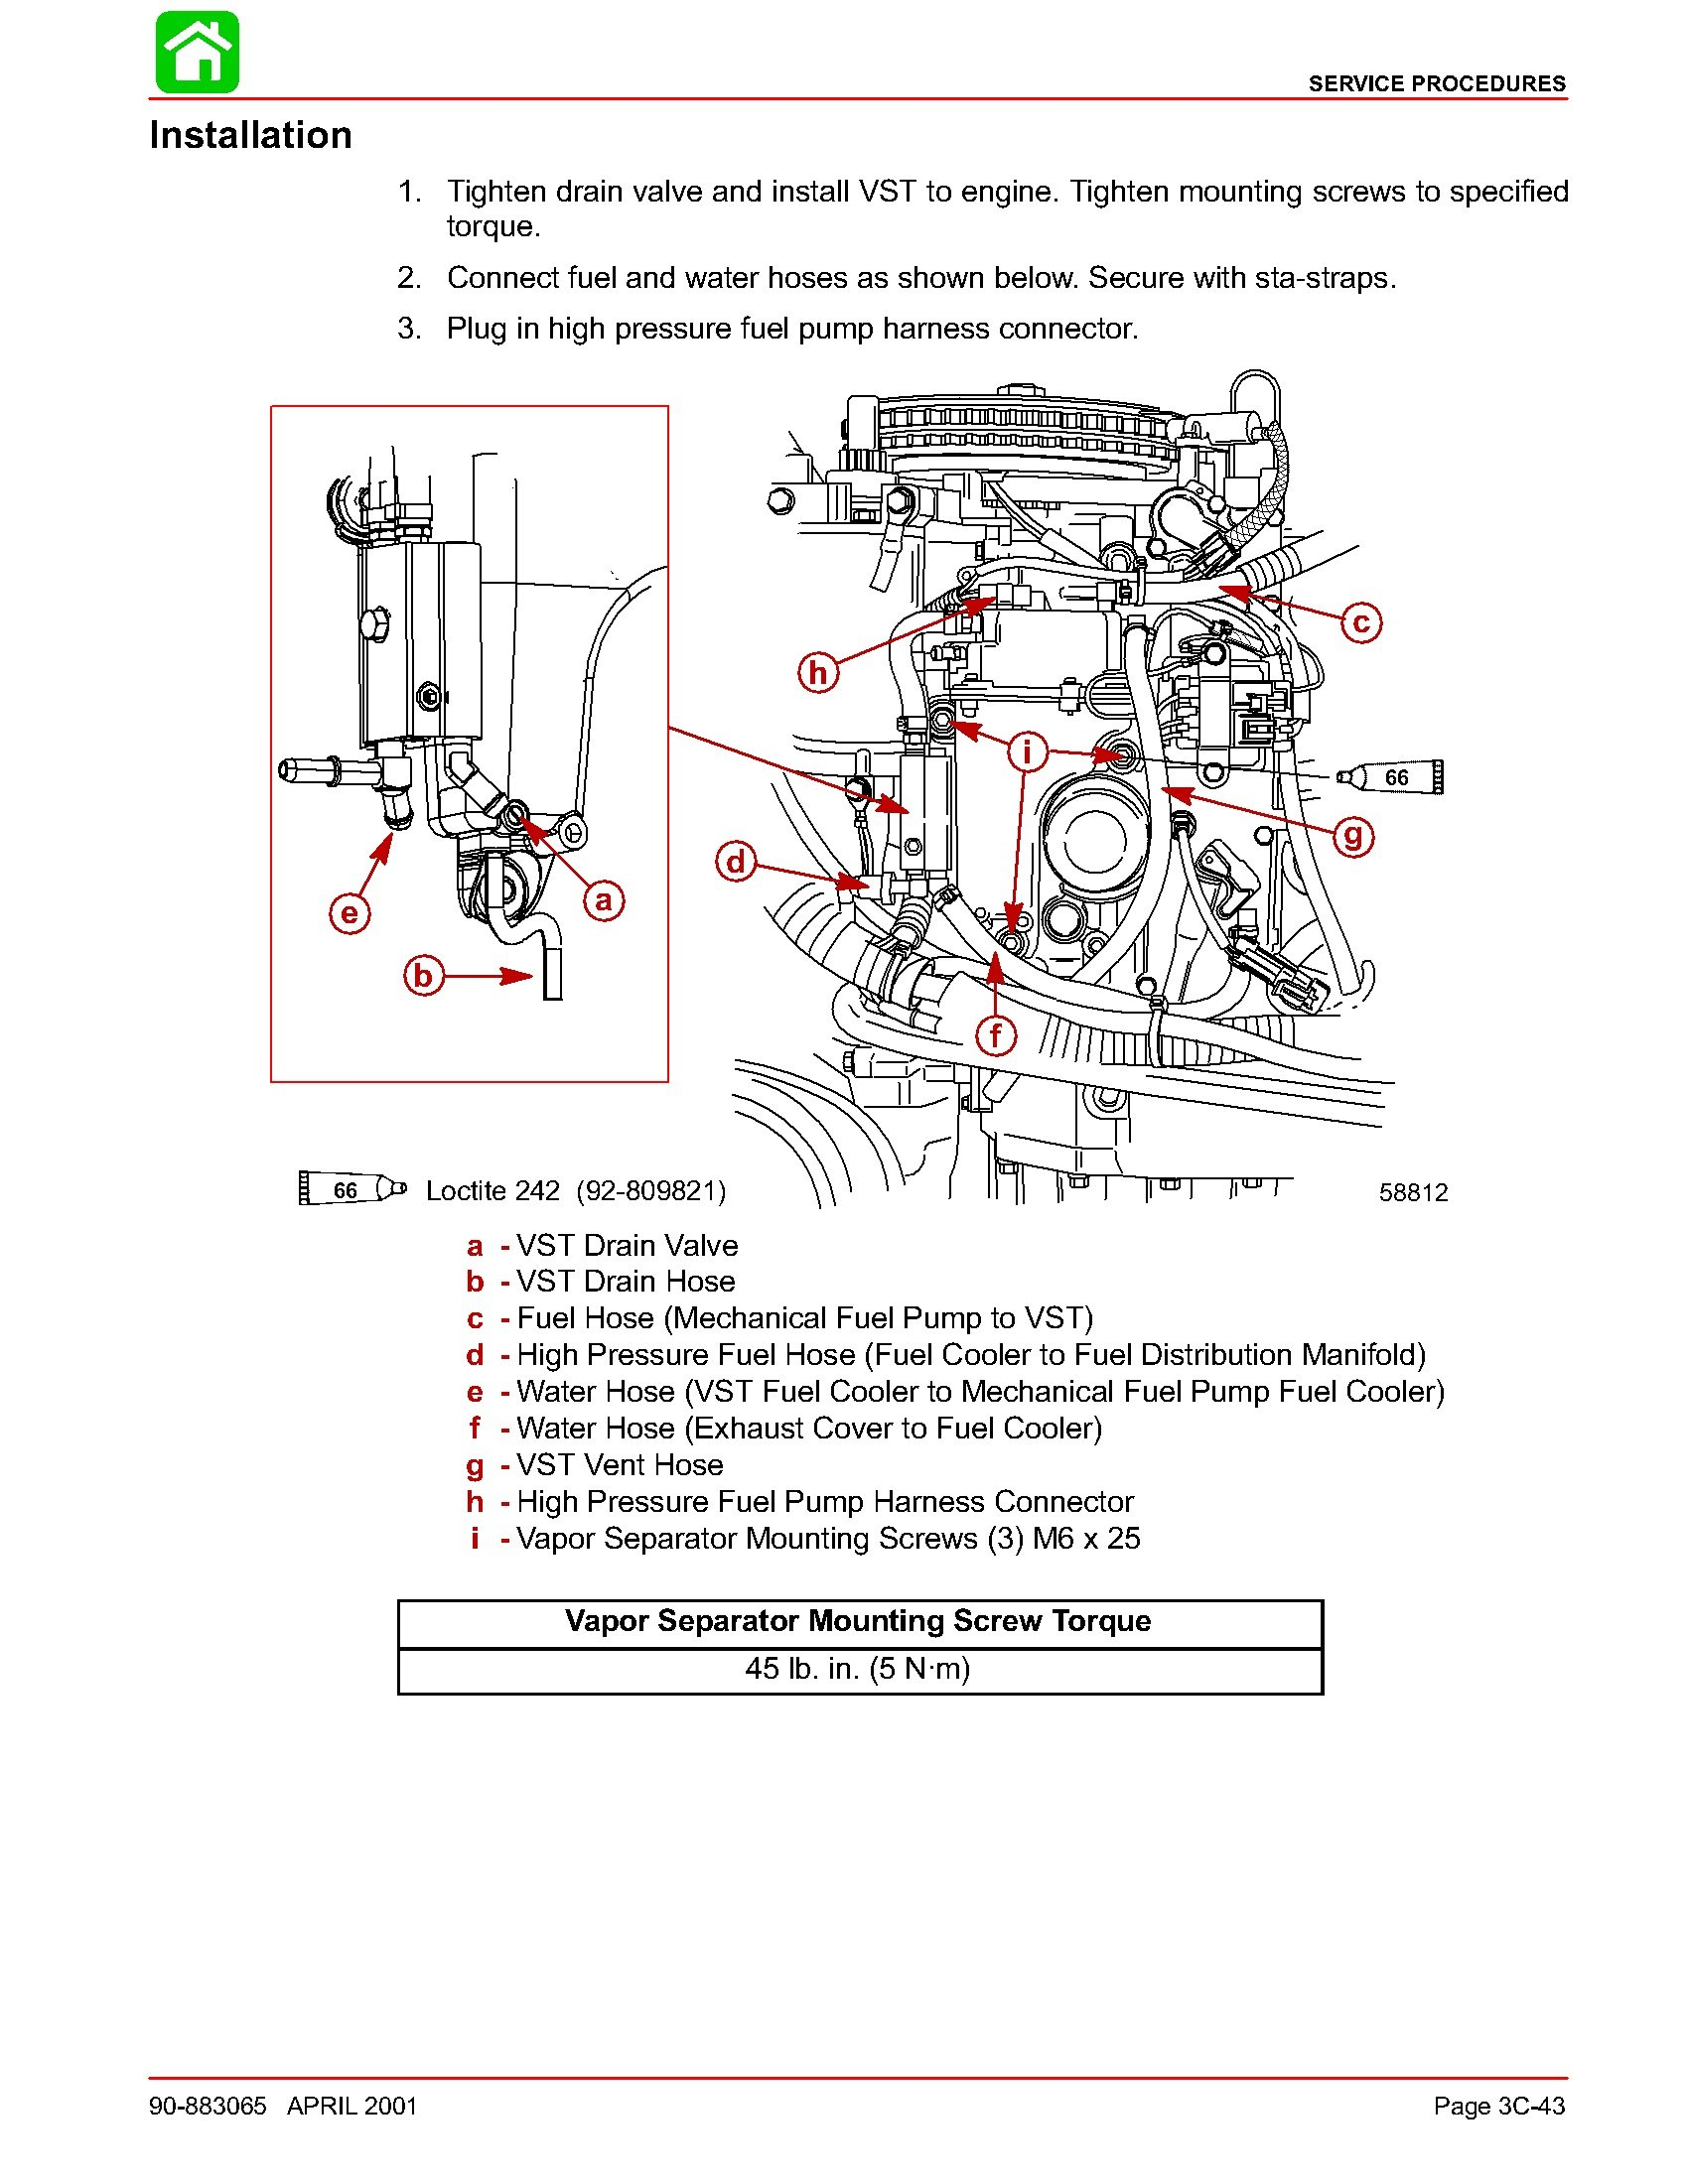 Motor Wiring Diagram Further Mercury Outboard Wiring Harness Diagram